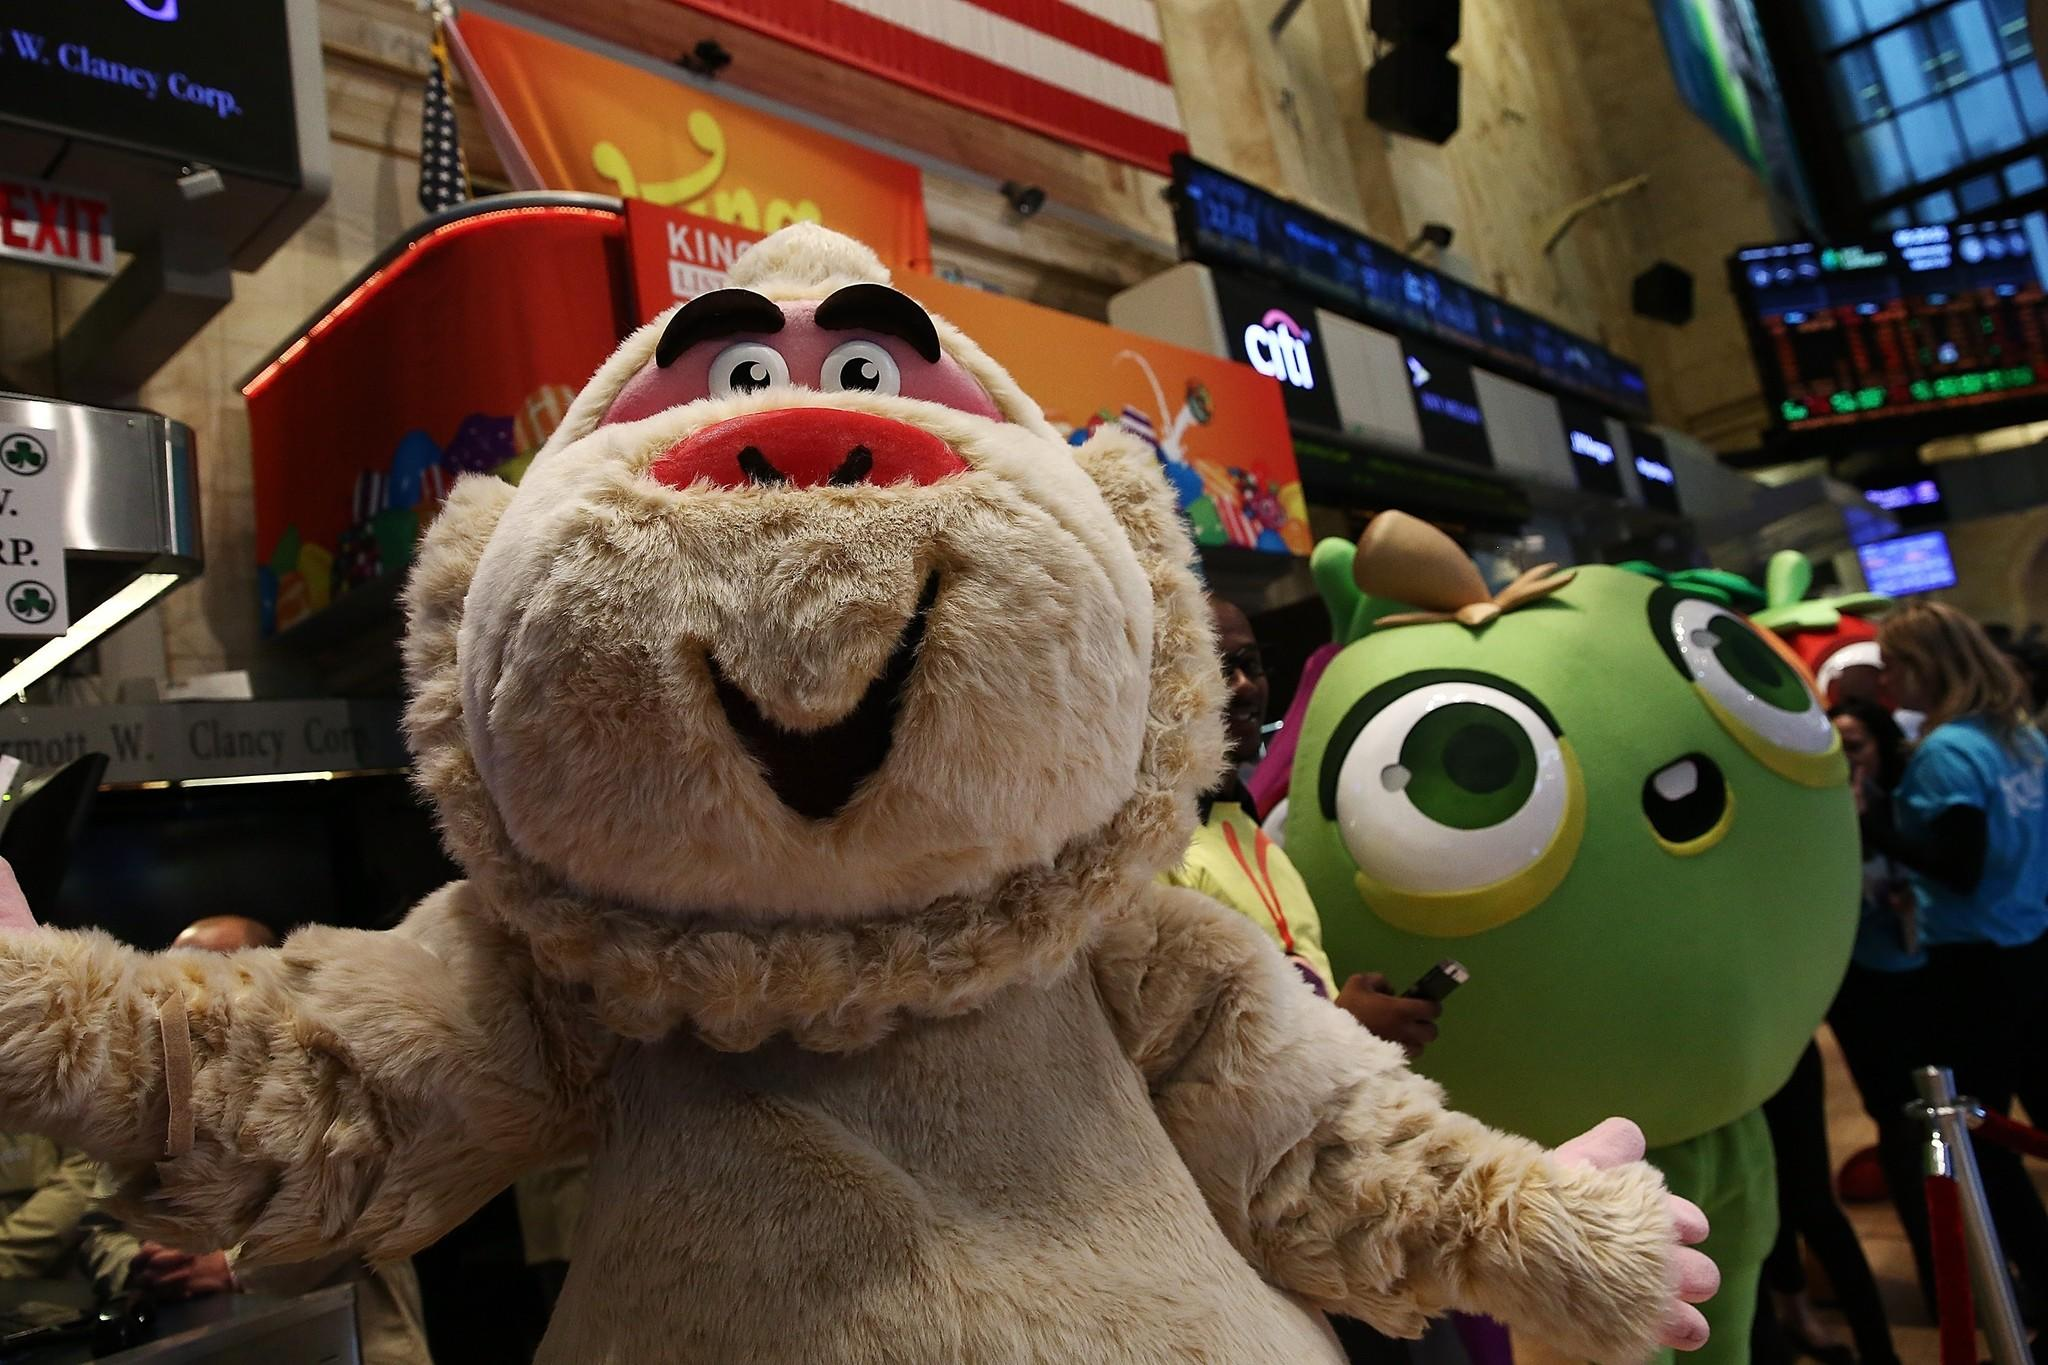 Characters from games made by King Digital Entertainment, maker of the popular Candy Crush game, roamed the floor of the New York Stock Exchange on Wednesday as the company made its Wall Street debut.